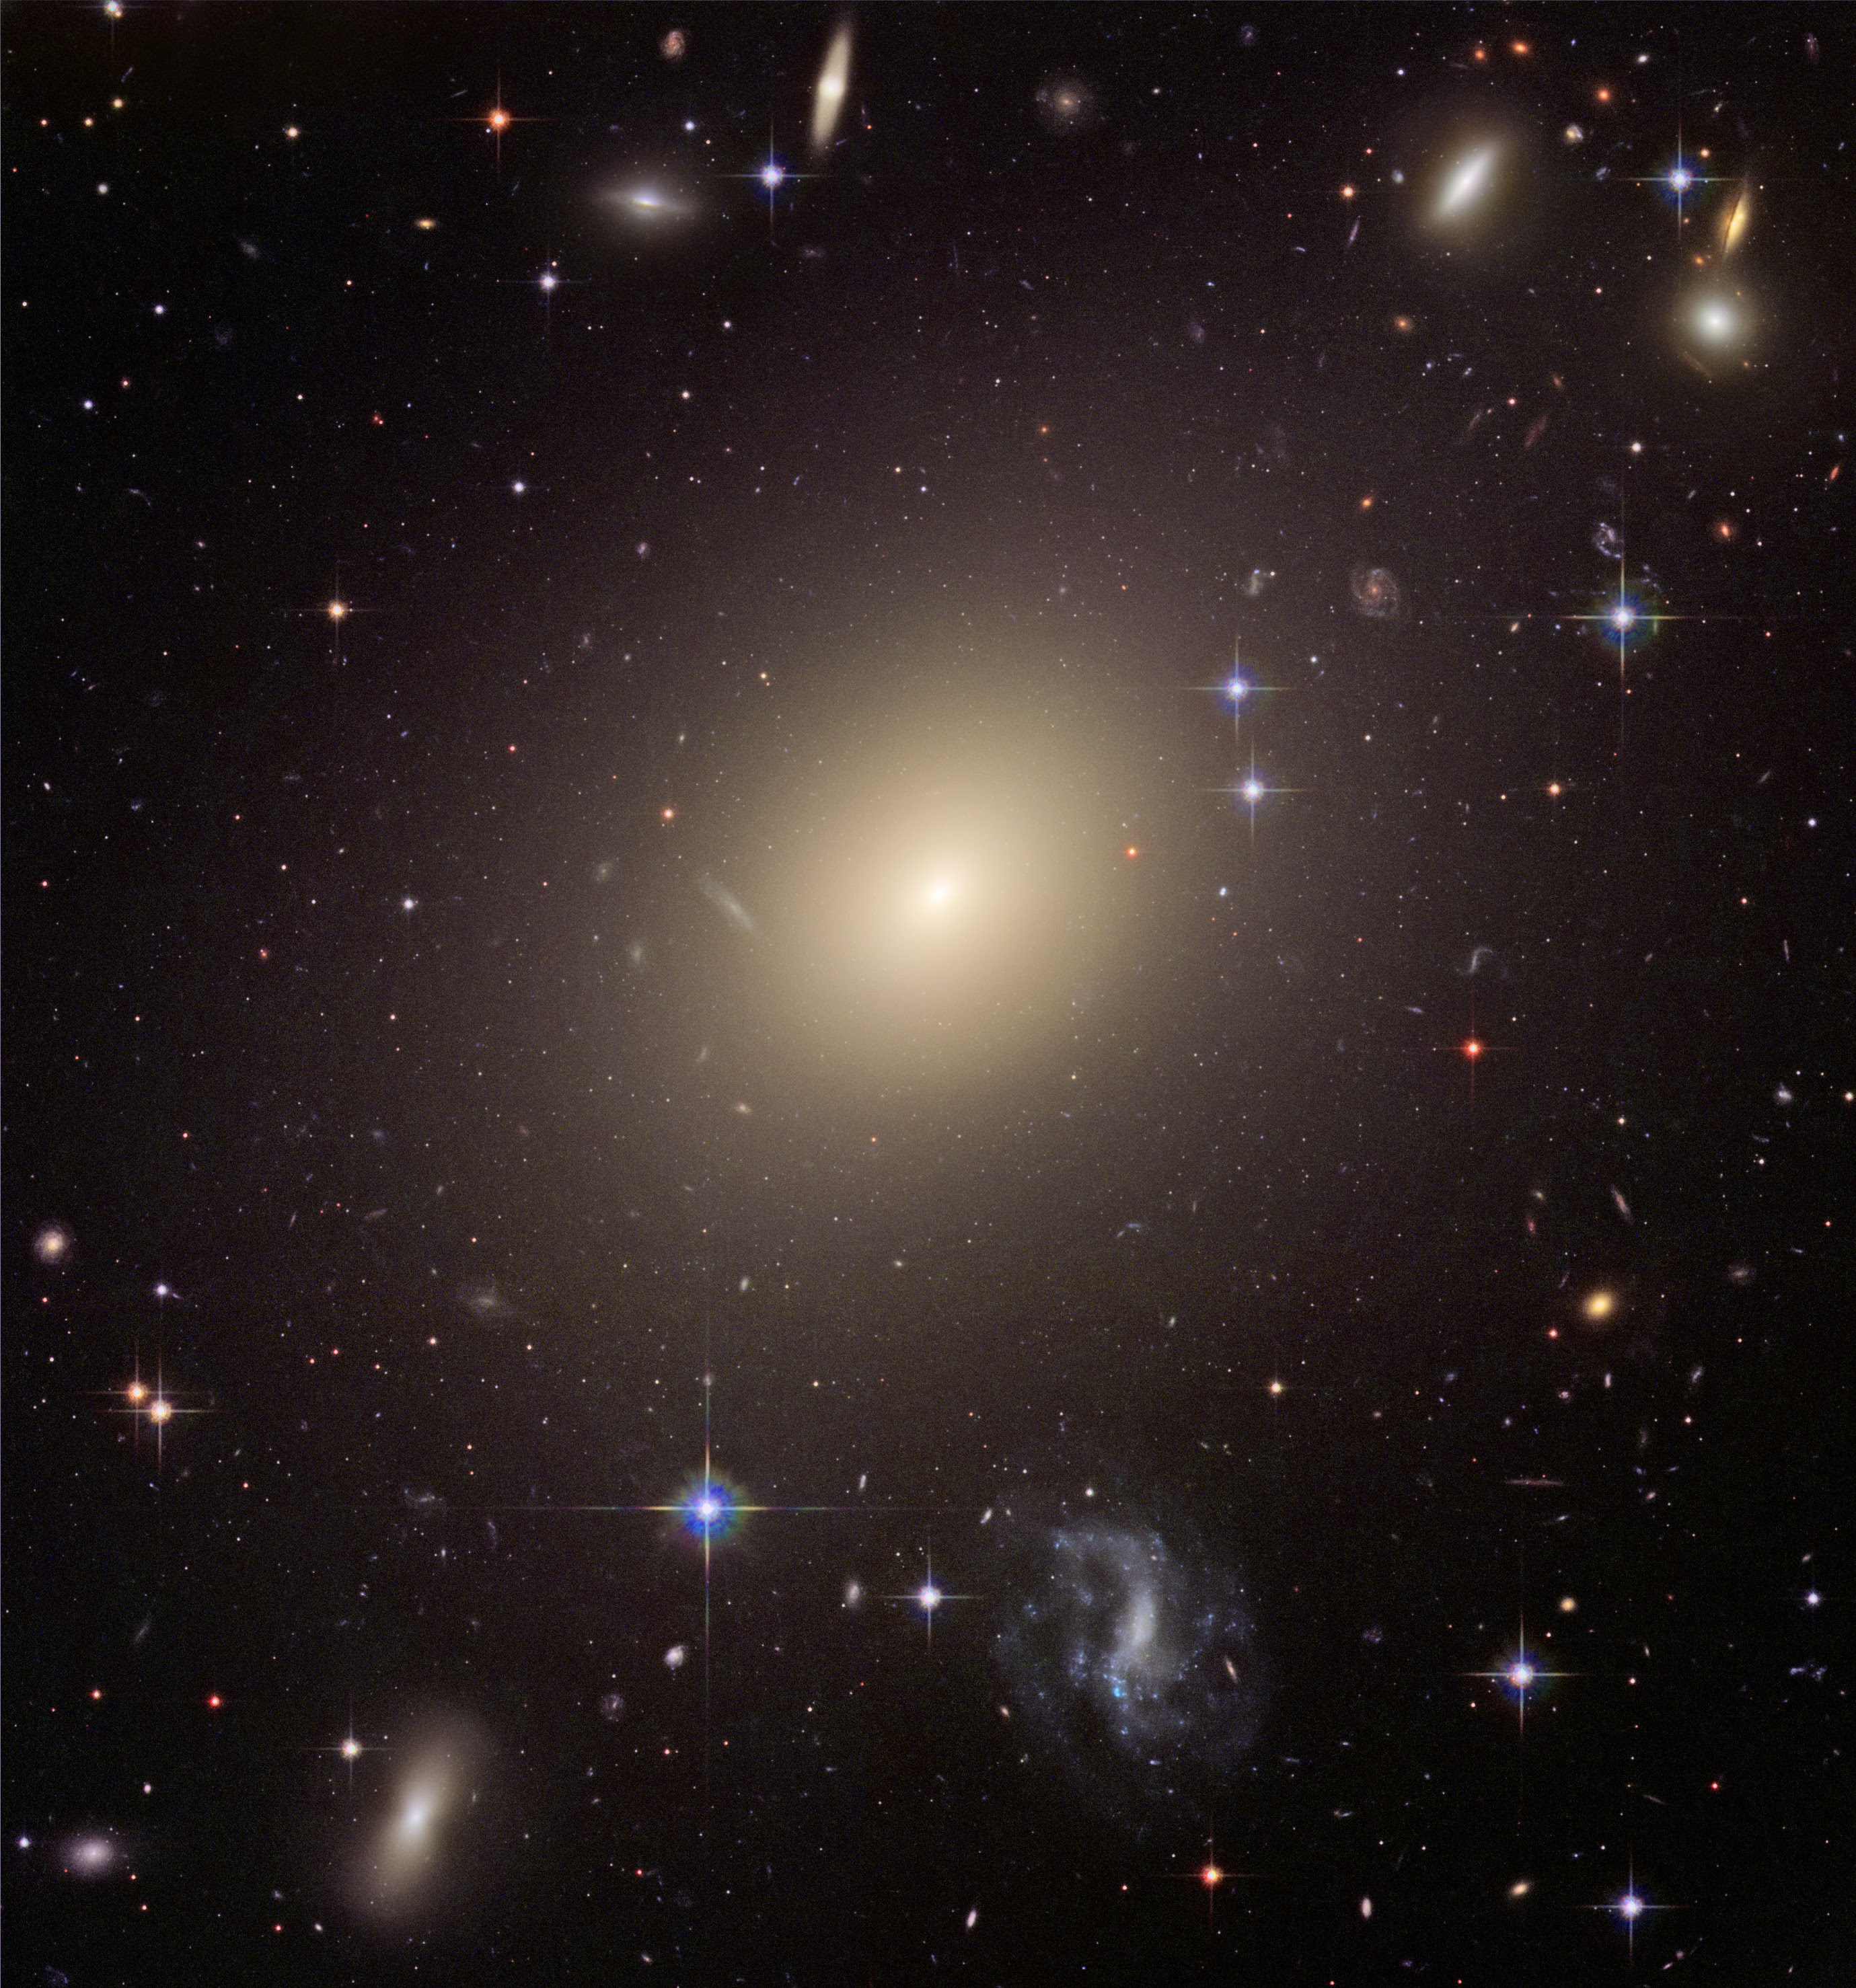 Abell_S740,_cropped_to_ESO_325 G004